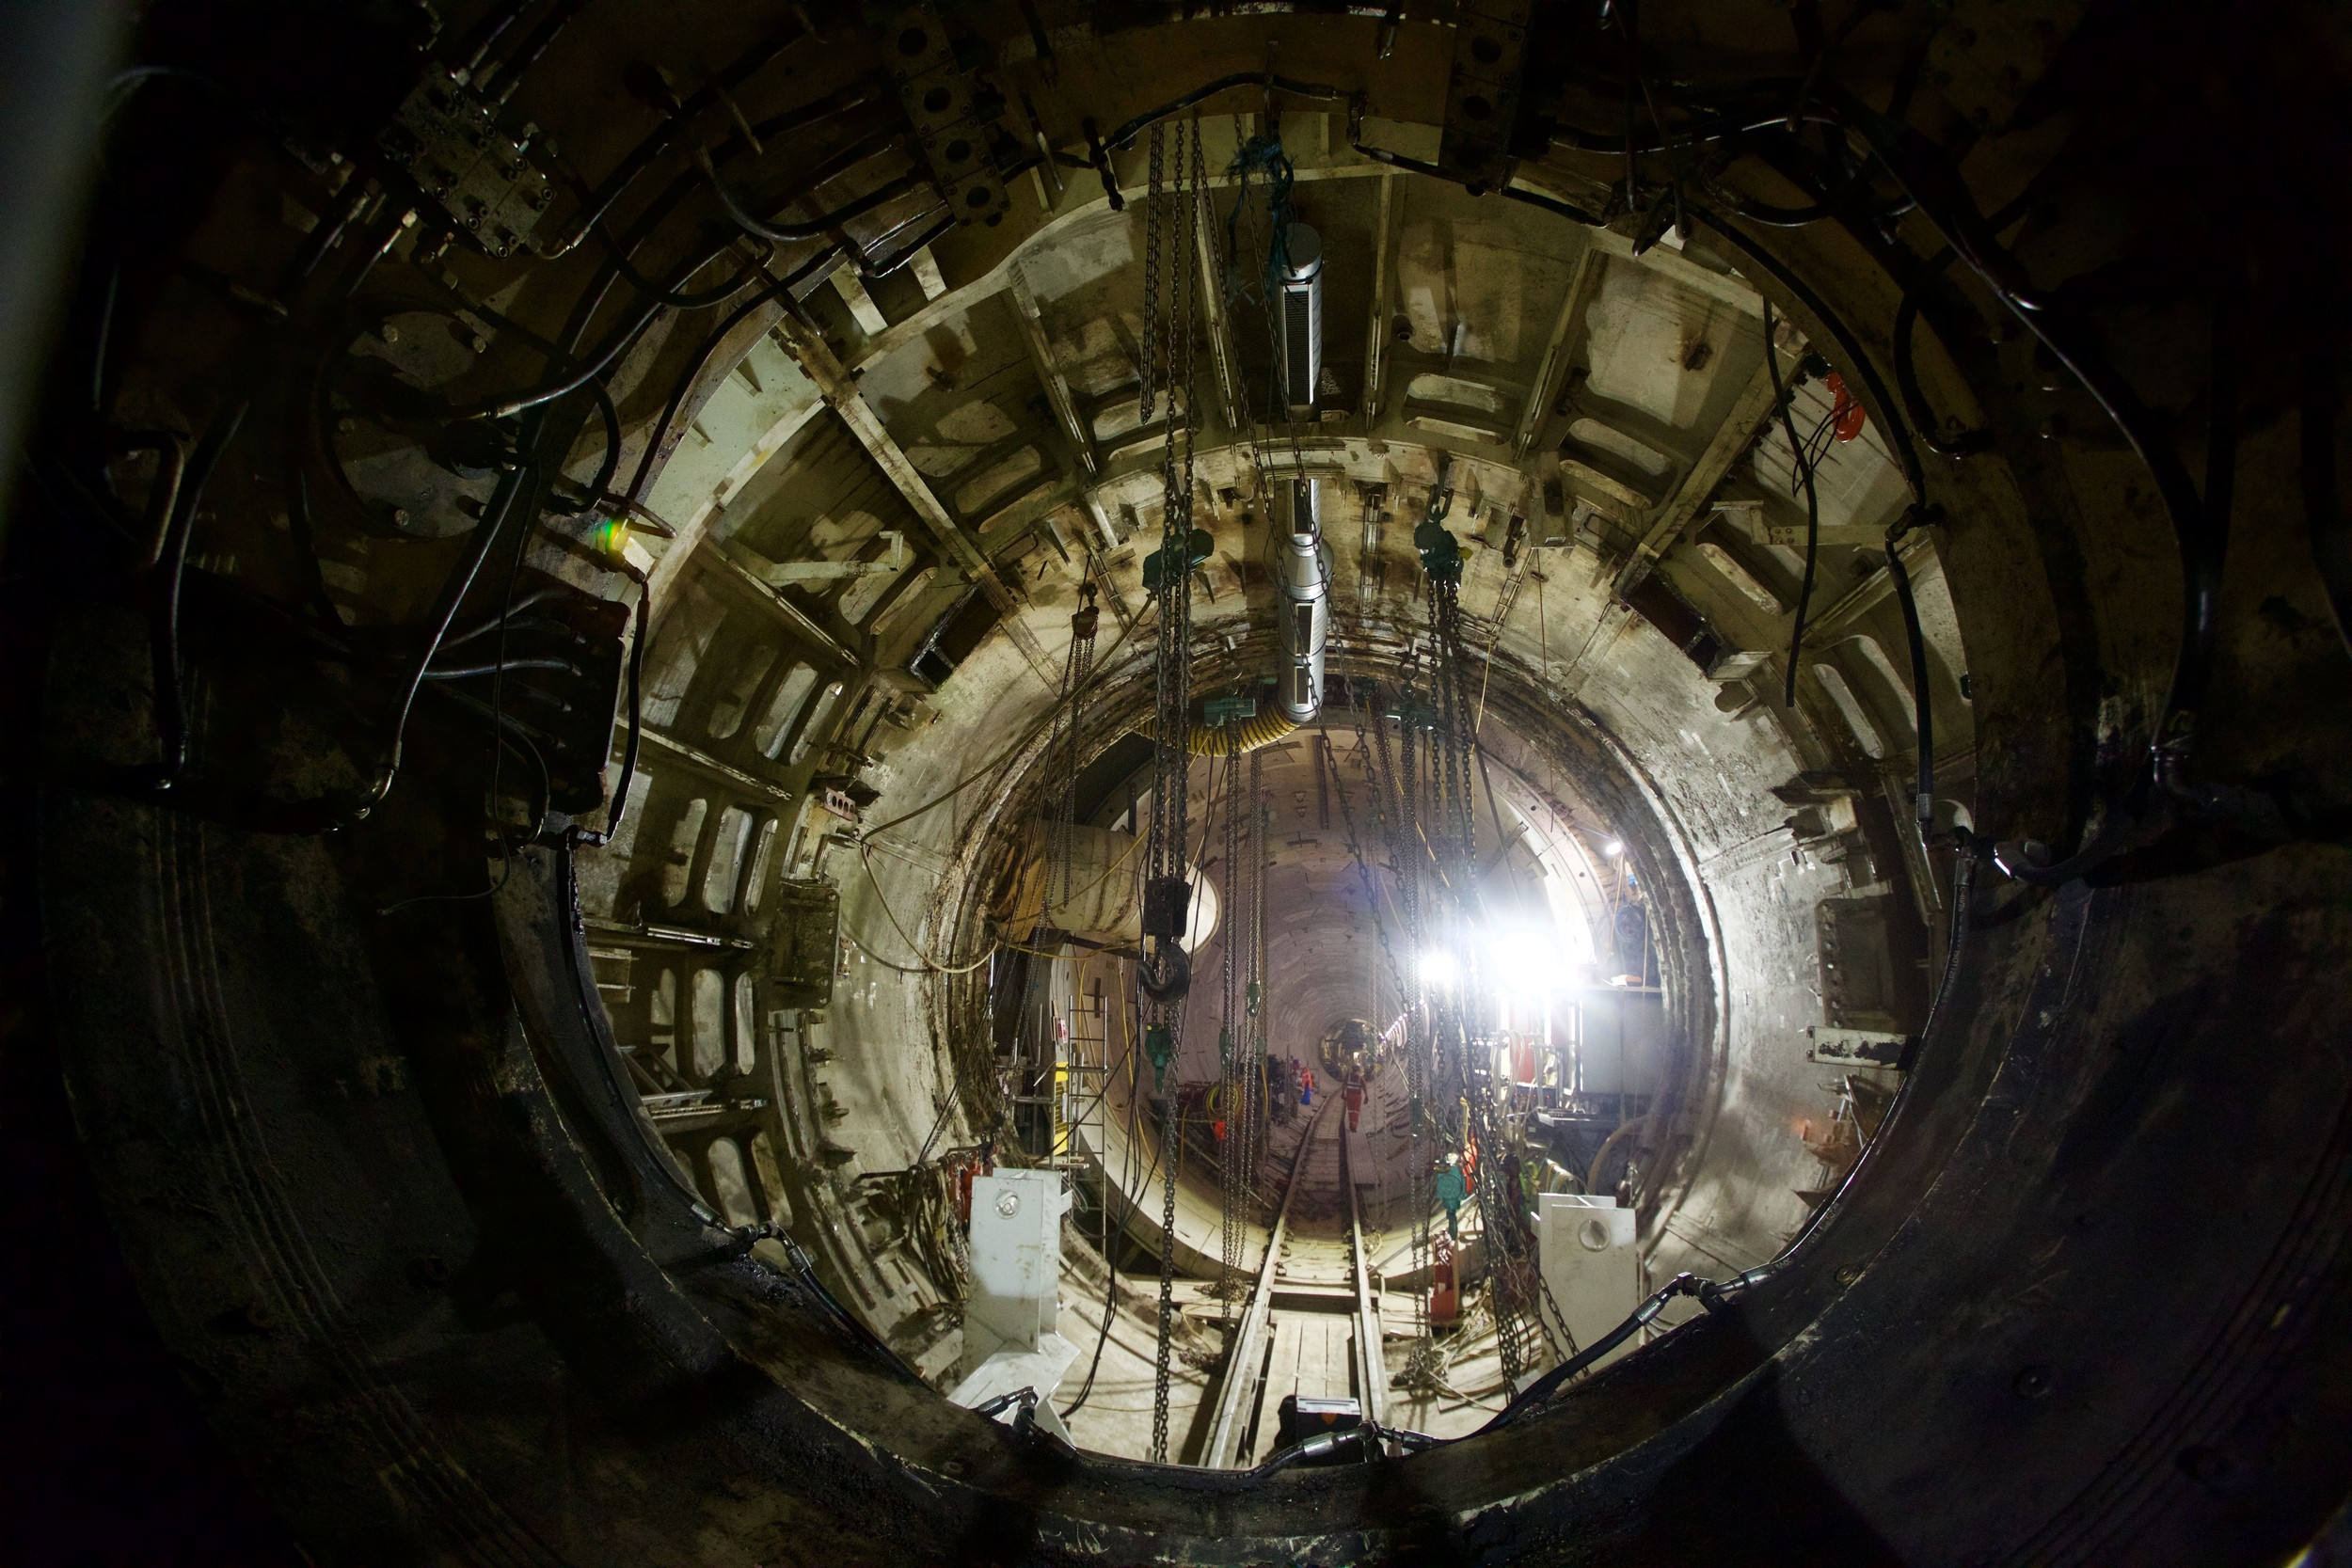 TBM Victoria Finished at Farringdon Station